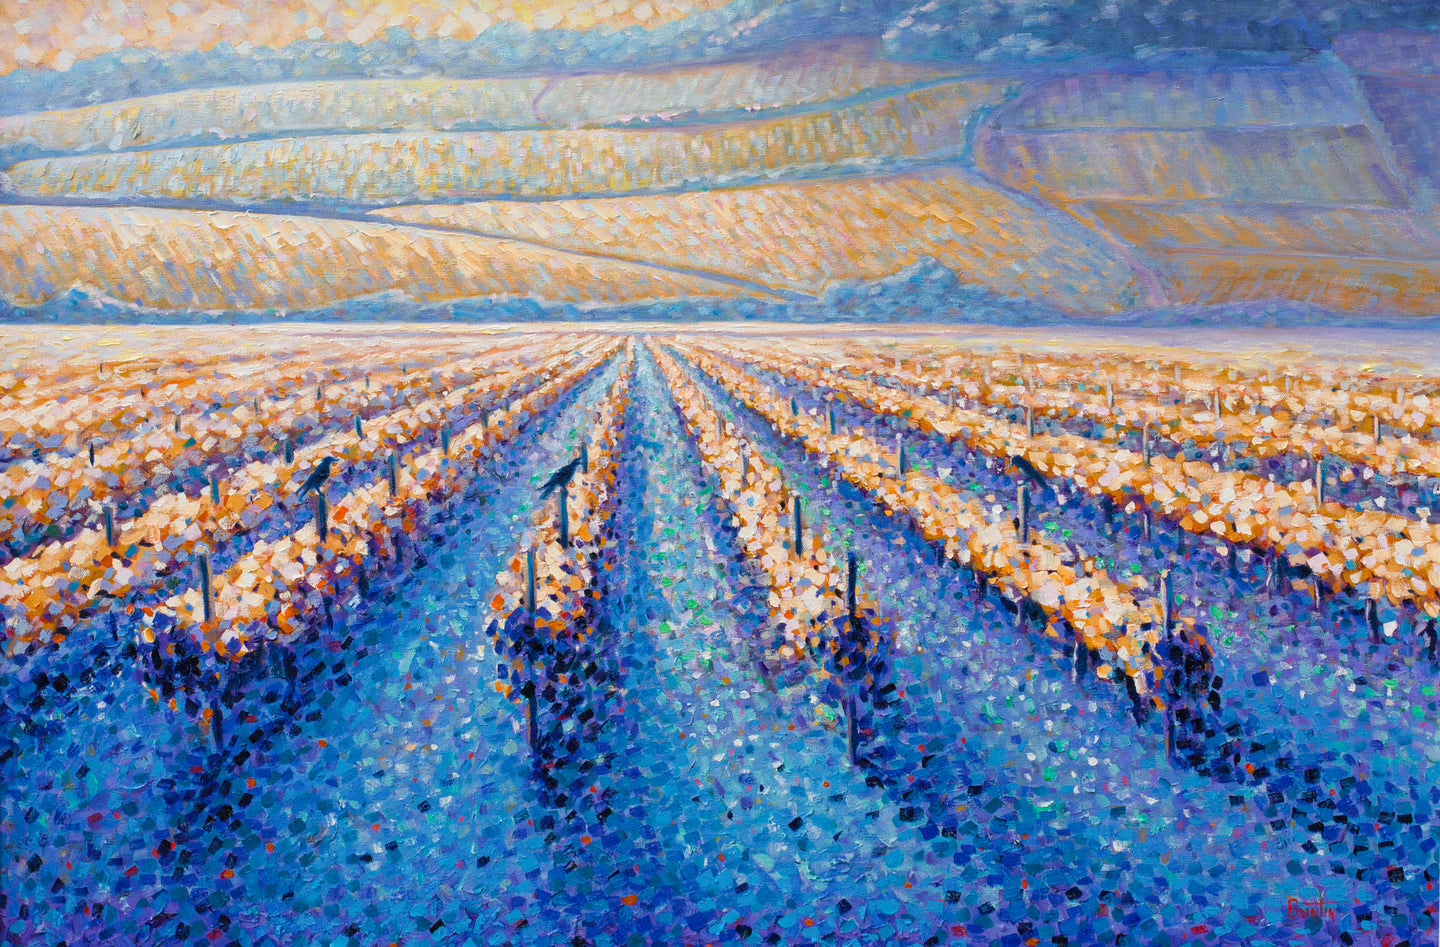 Golden Vineyards - Hand embellished giclee on canvas 24x36in